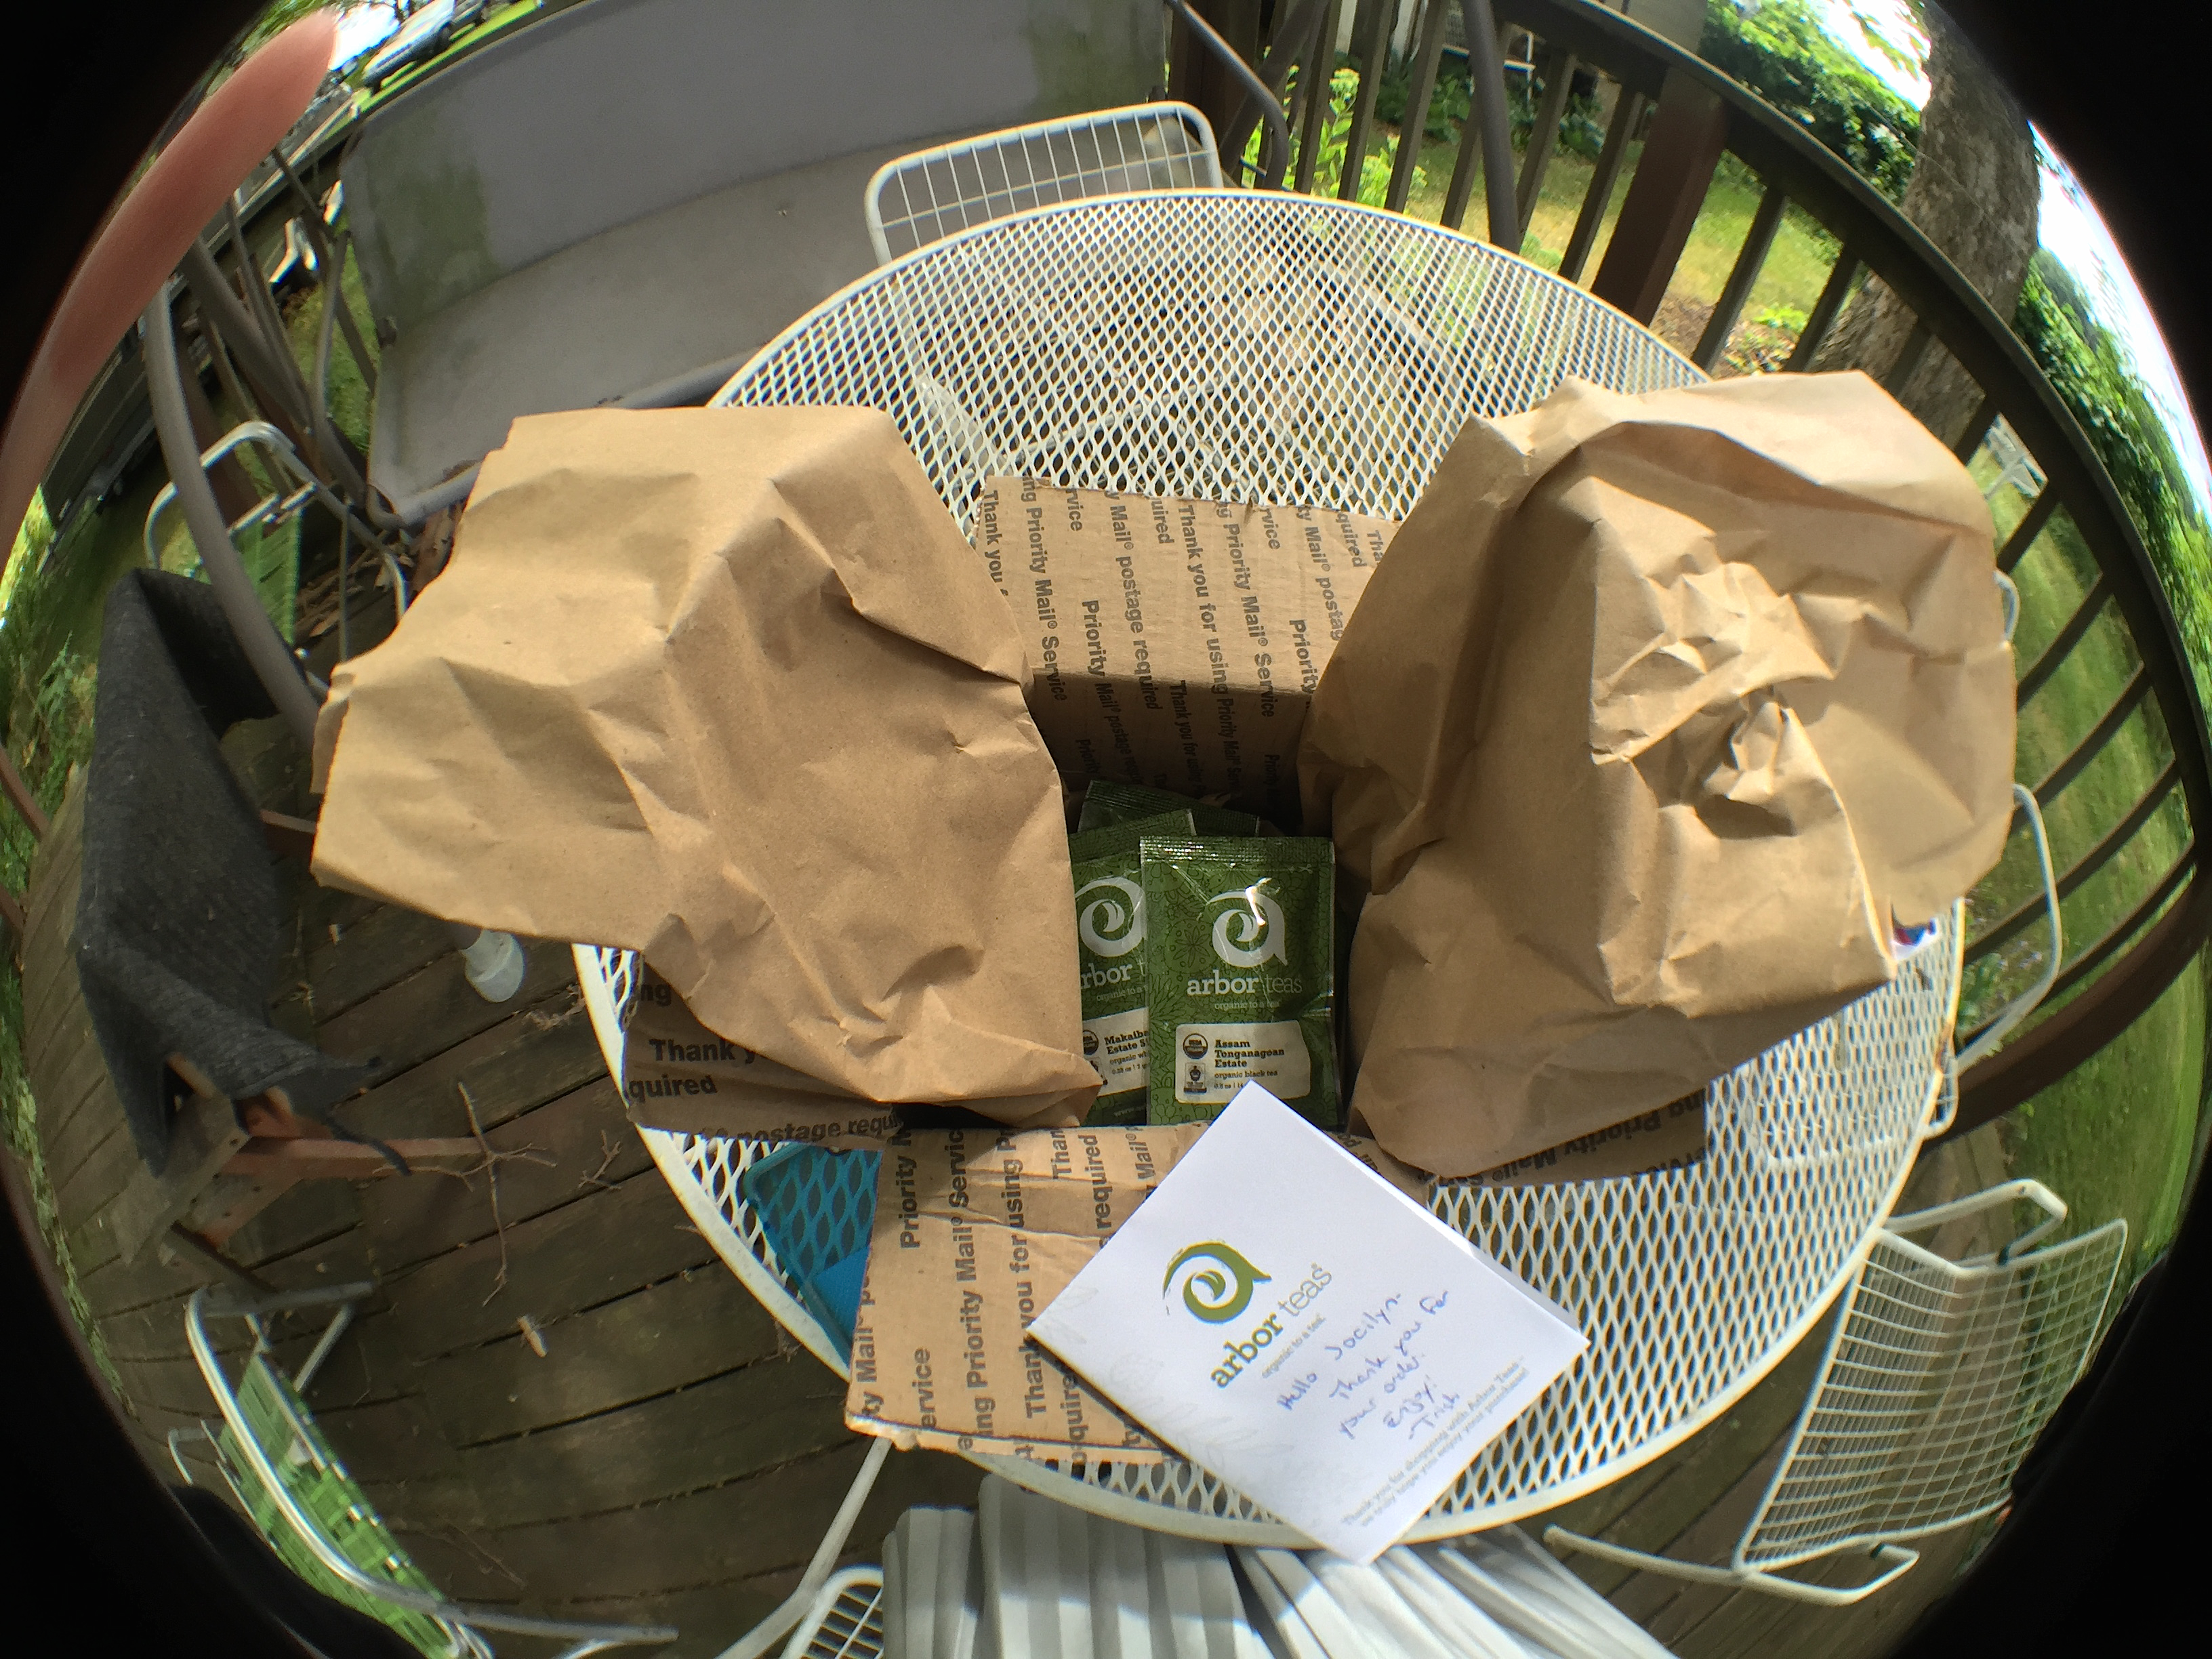 Unboxing Arbor Teas Fisheye by Jocilyn Mors is licensed under a Creative Commons Attribution-ShareAlike 4.0 International License.